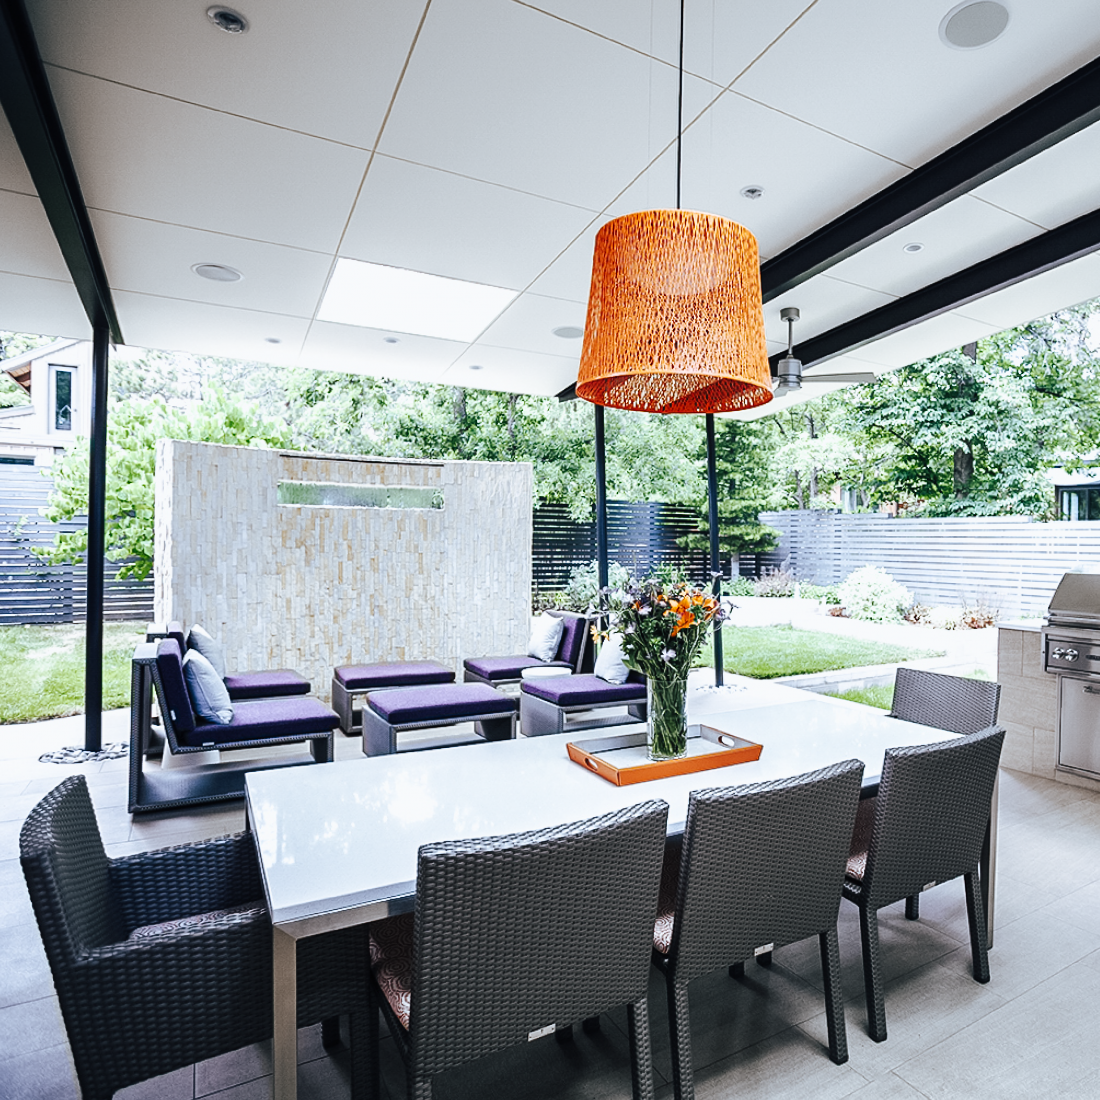 Outdoor patio space with dining and lounging areas